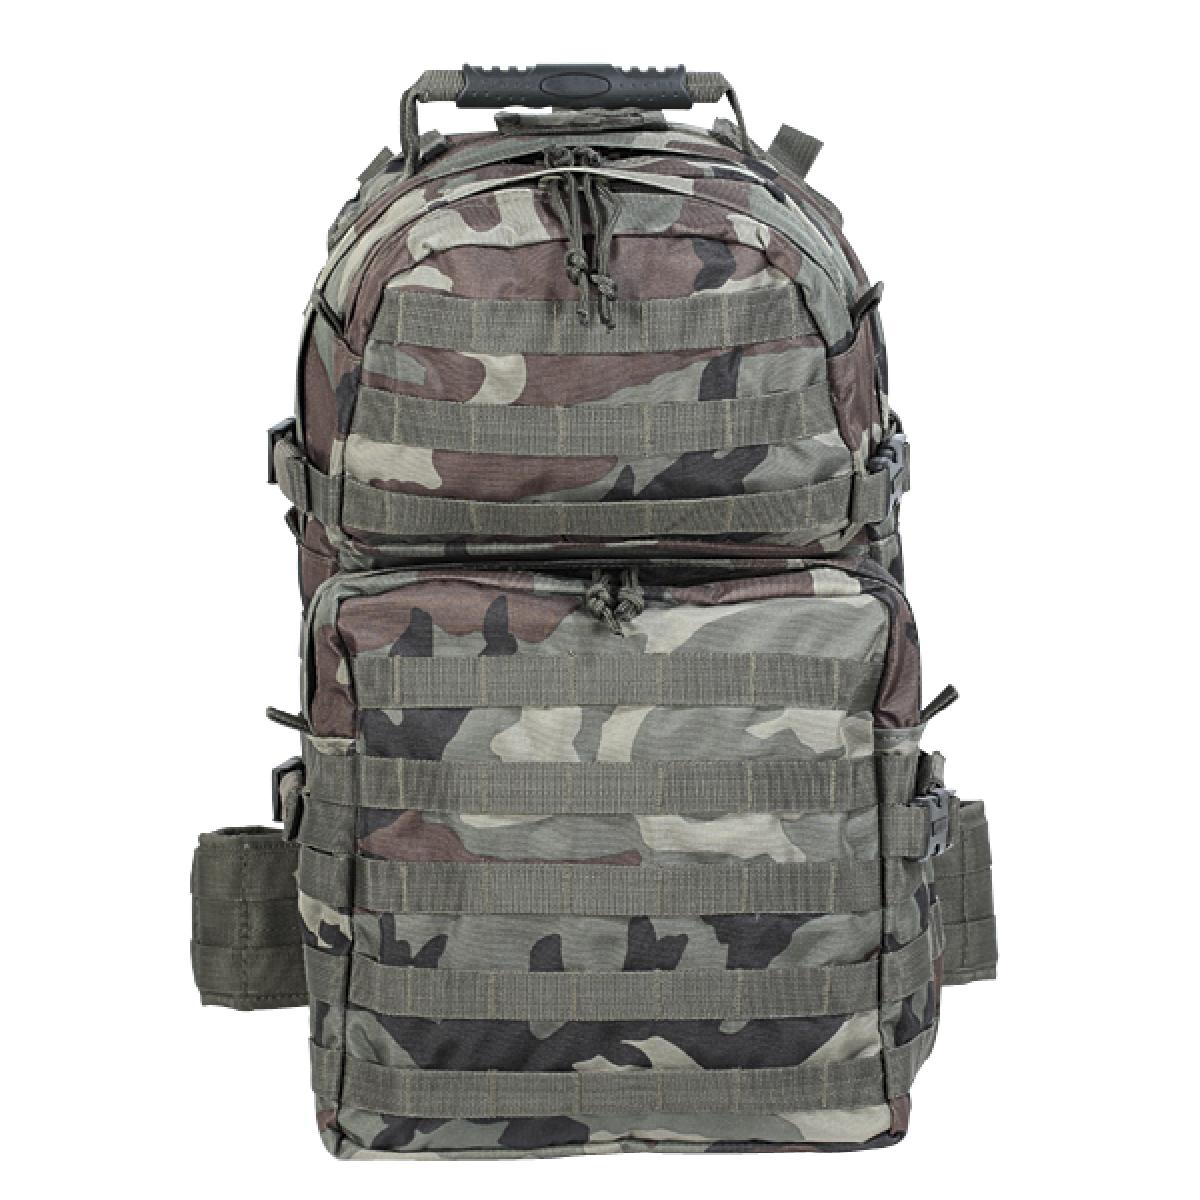 b7c0892a1858 Voodoo Tactical 15-817101000 Black New Enhanced Military 3-Day Assault Pack